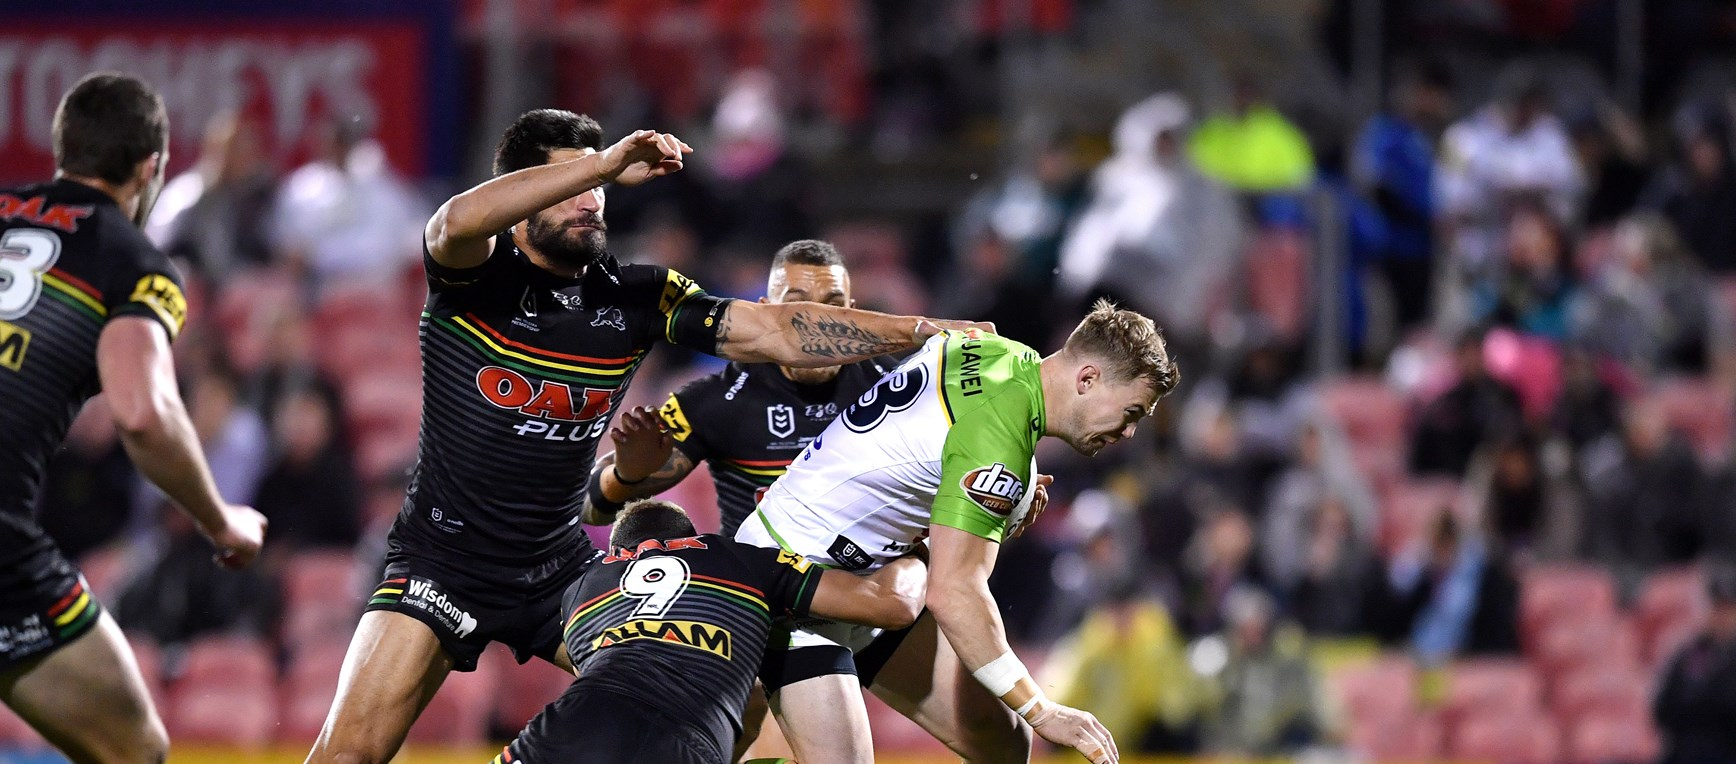 Match Gallery: Raiders v Panthers